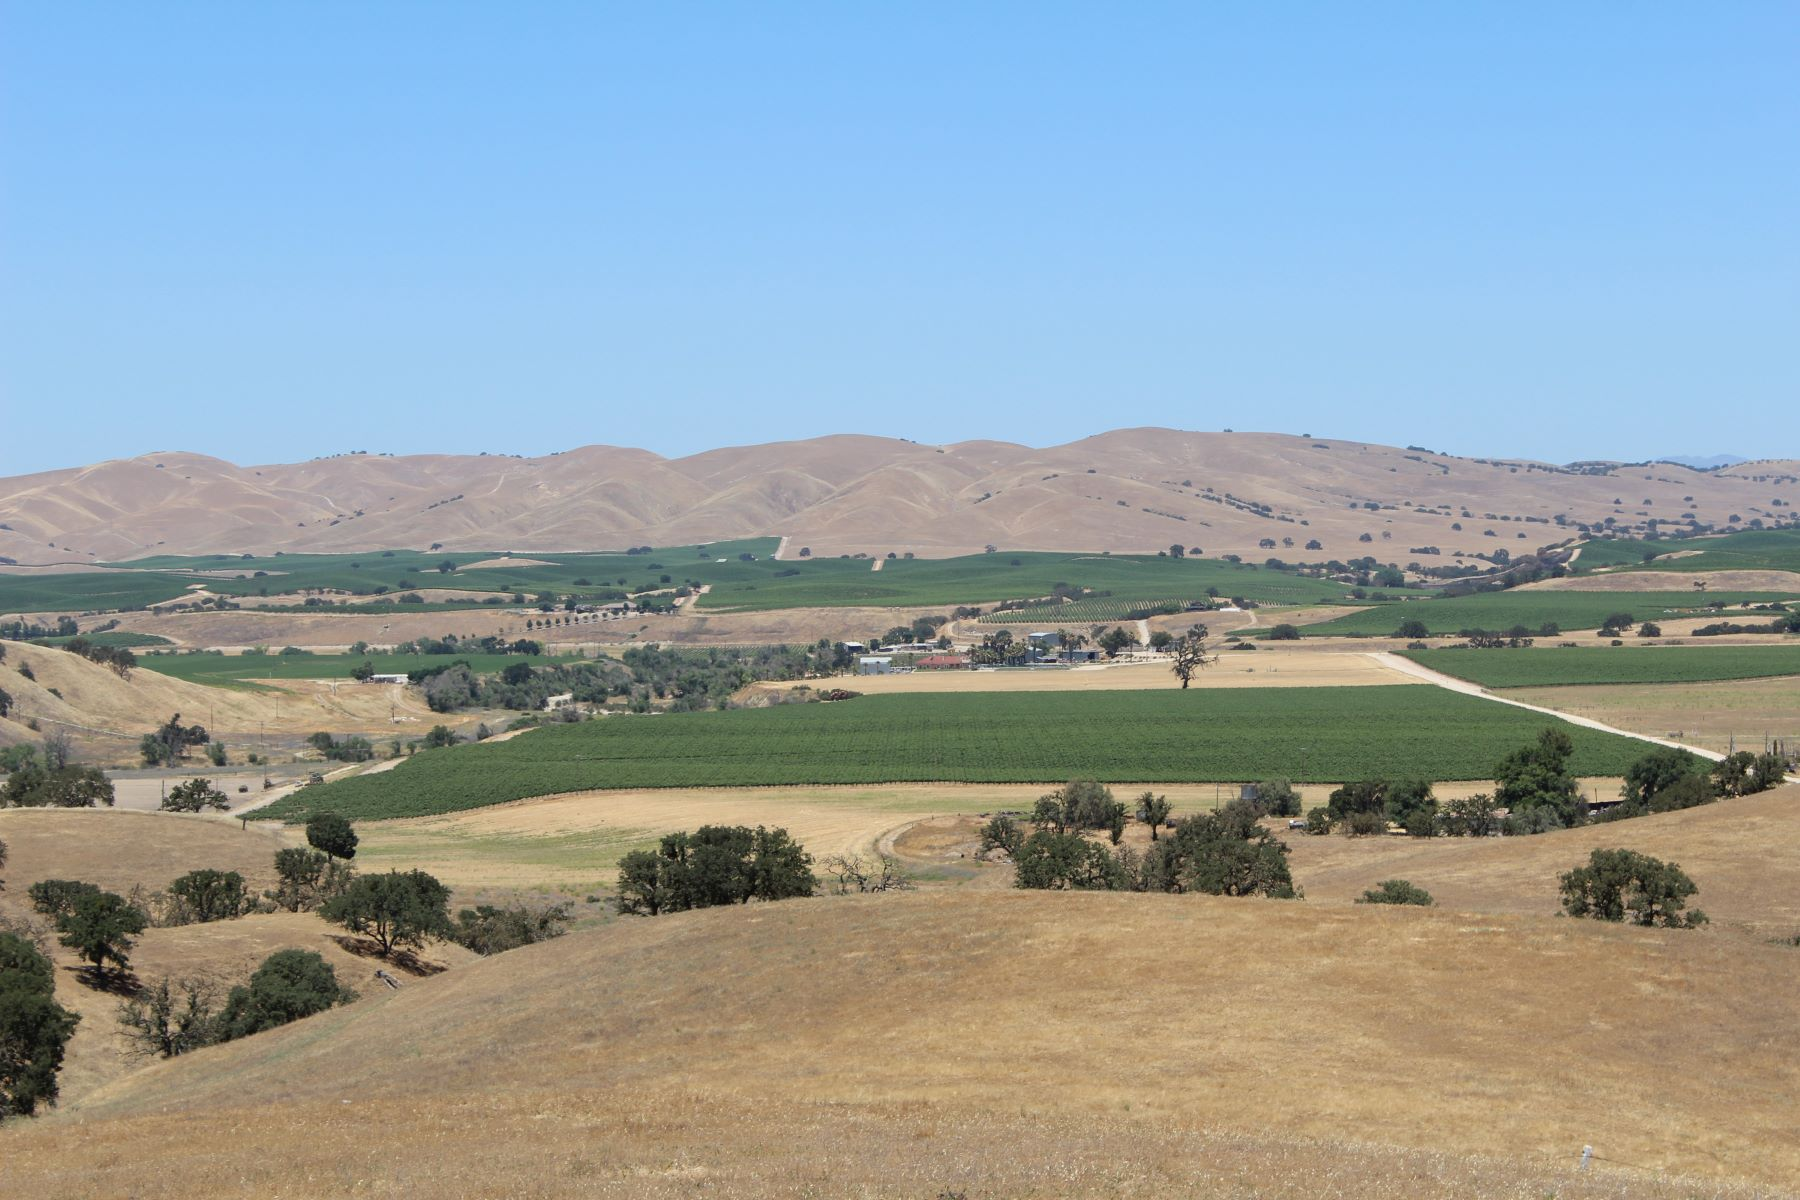 Land for Sale at 82.97± Acres Located in the Heart of Wine Country Wellsona Road, Parcel 1 Paso Robles, California 93446 United States